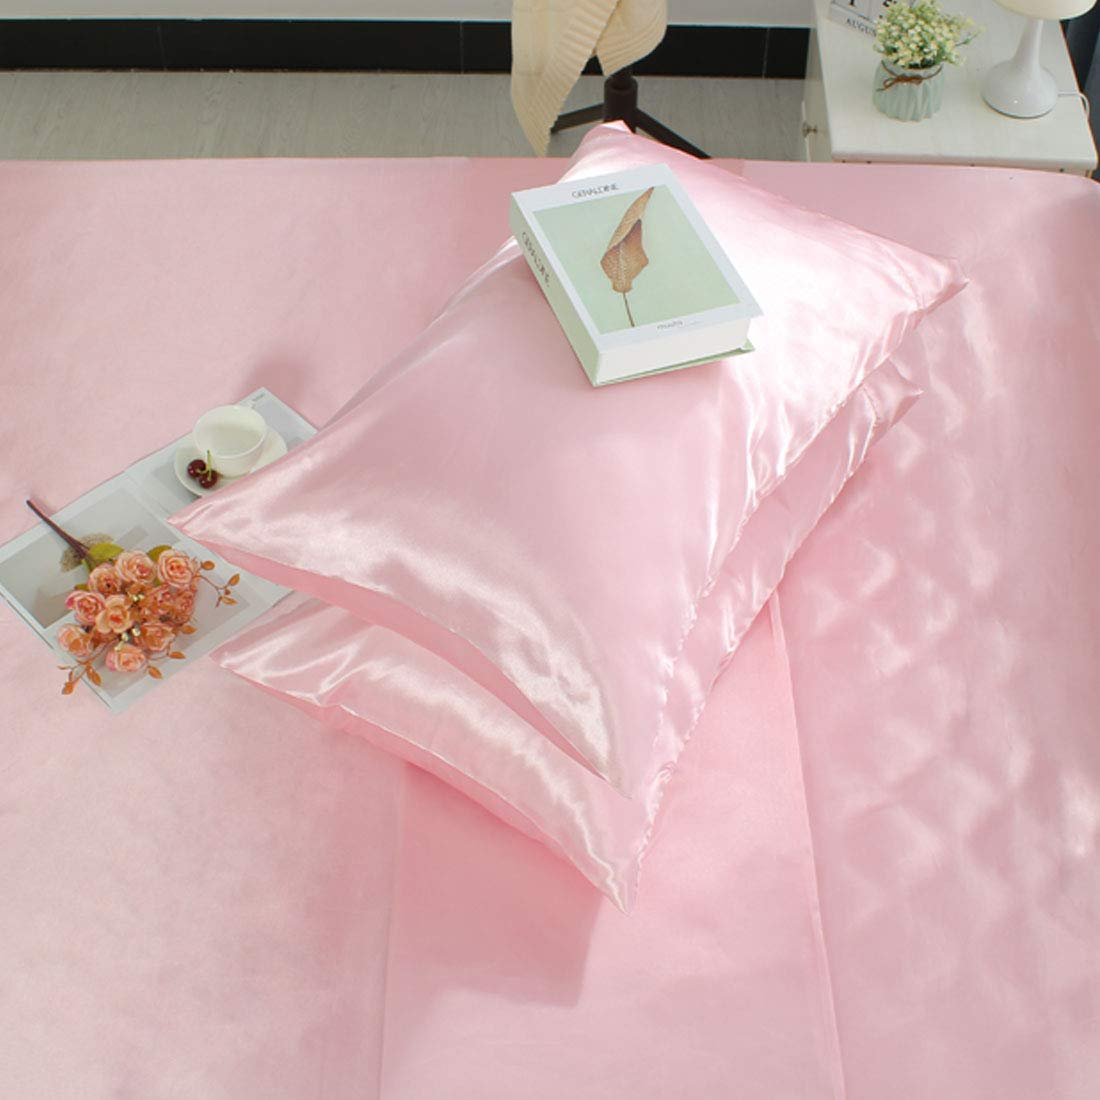 uxcell Standard Pillowcases Satin Luxury Comfortable No Zipper Envelope Closure Fade Wrinkle Resistant Pink 2pcs